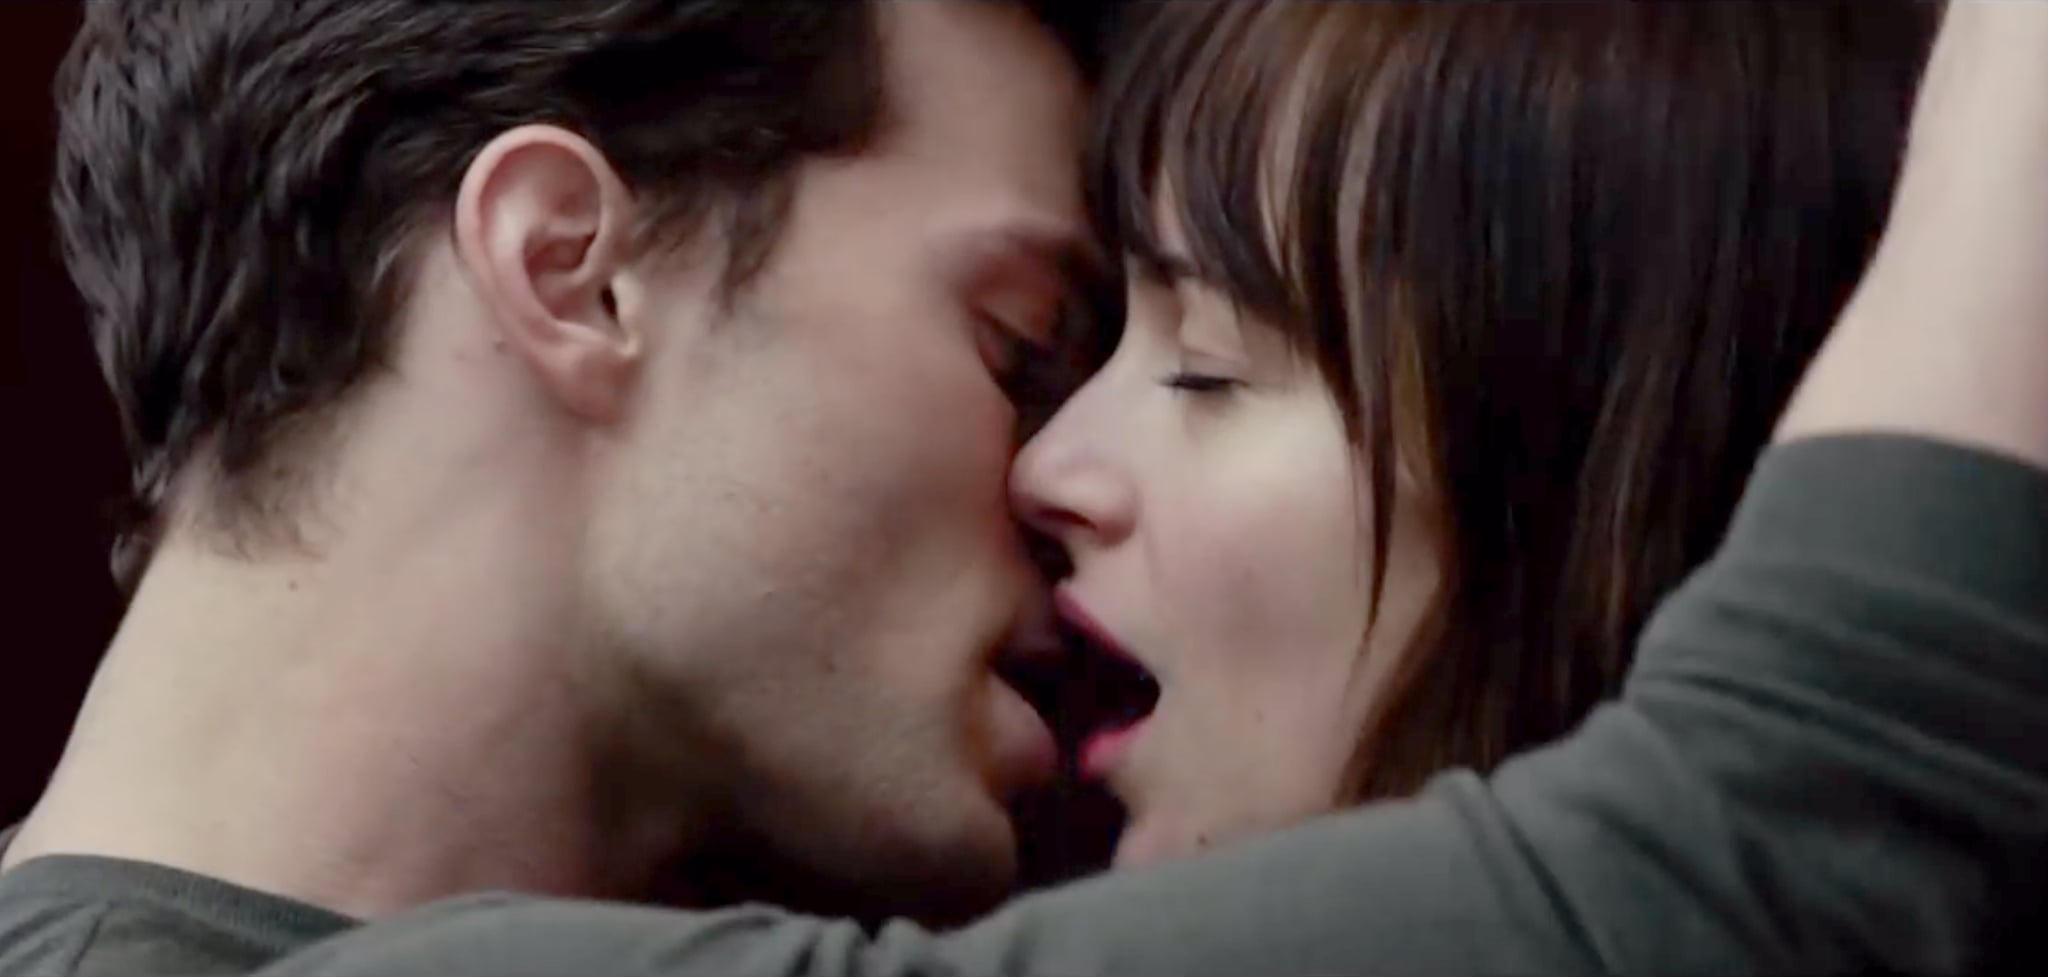 shades of grey sex excerpts popsugar love uk share this link